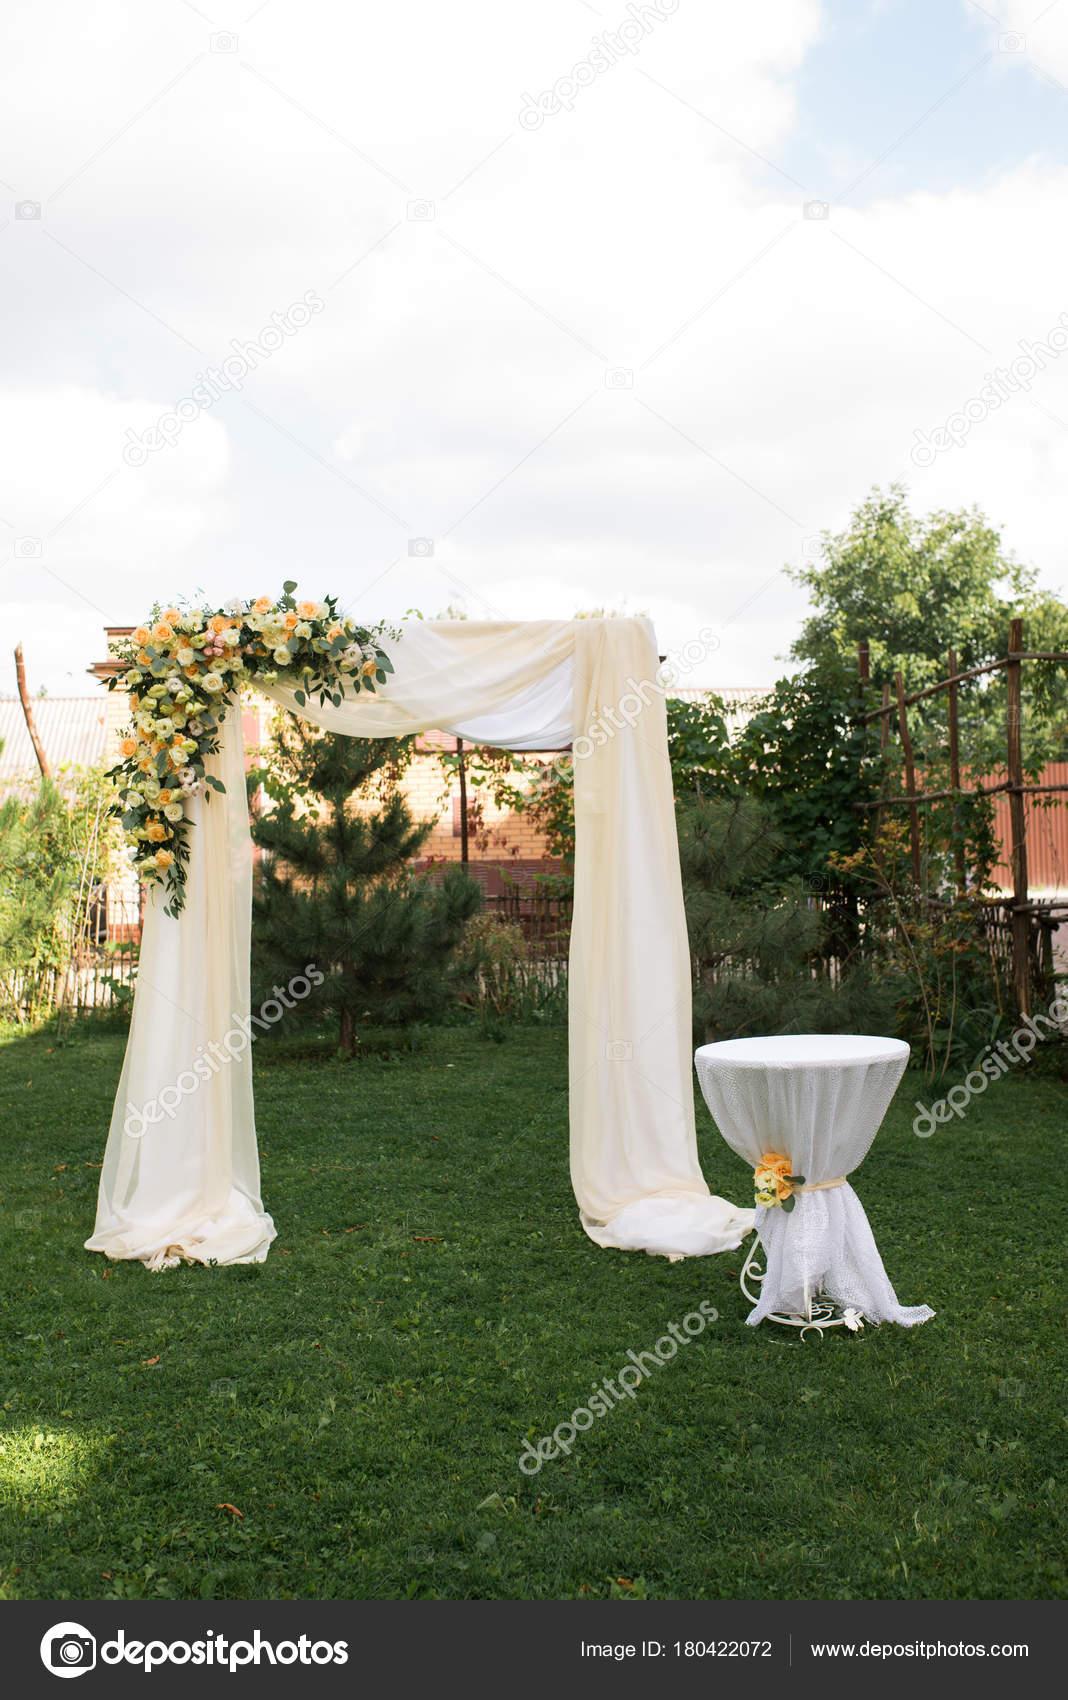 Open Air Decorated Area Wedding Ceremony Wooden Arch Decorated Fresh ...